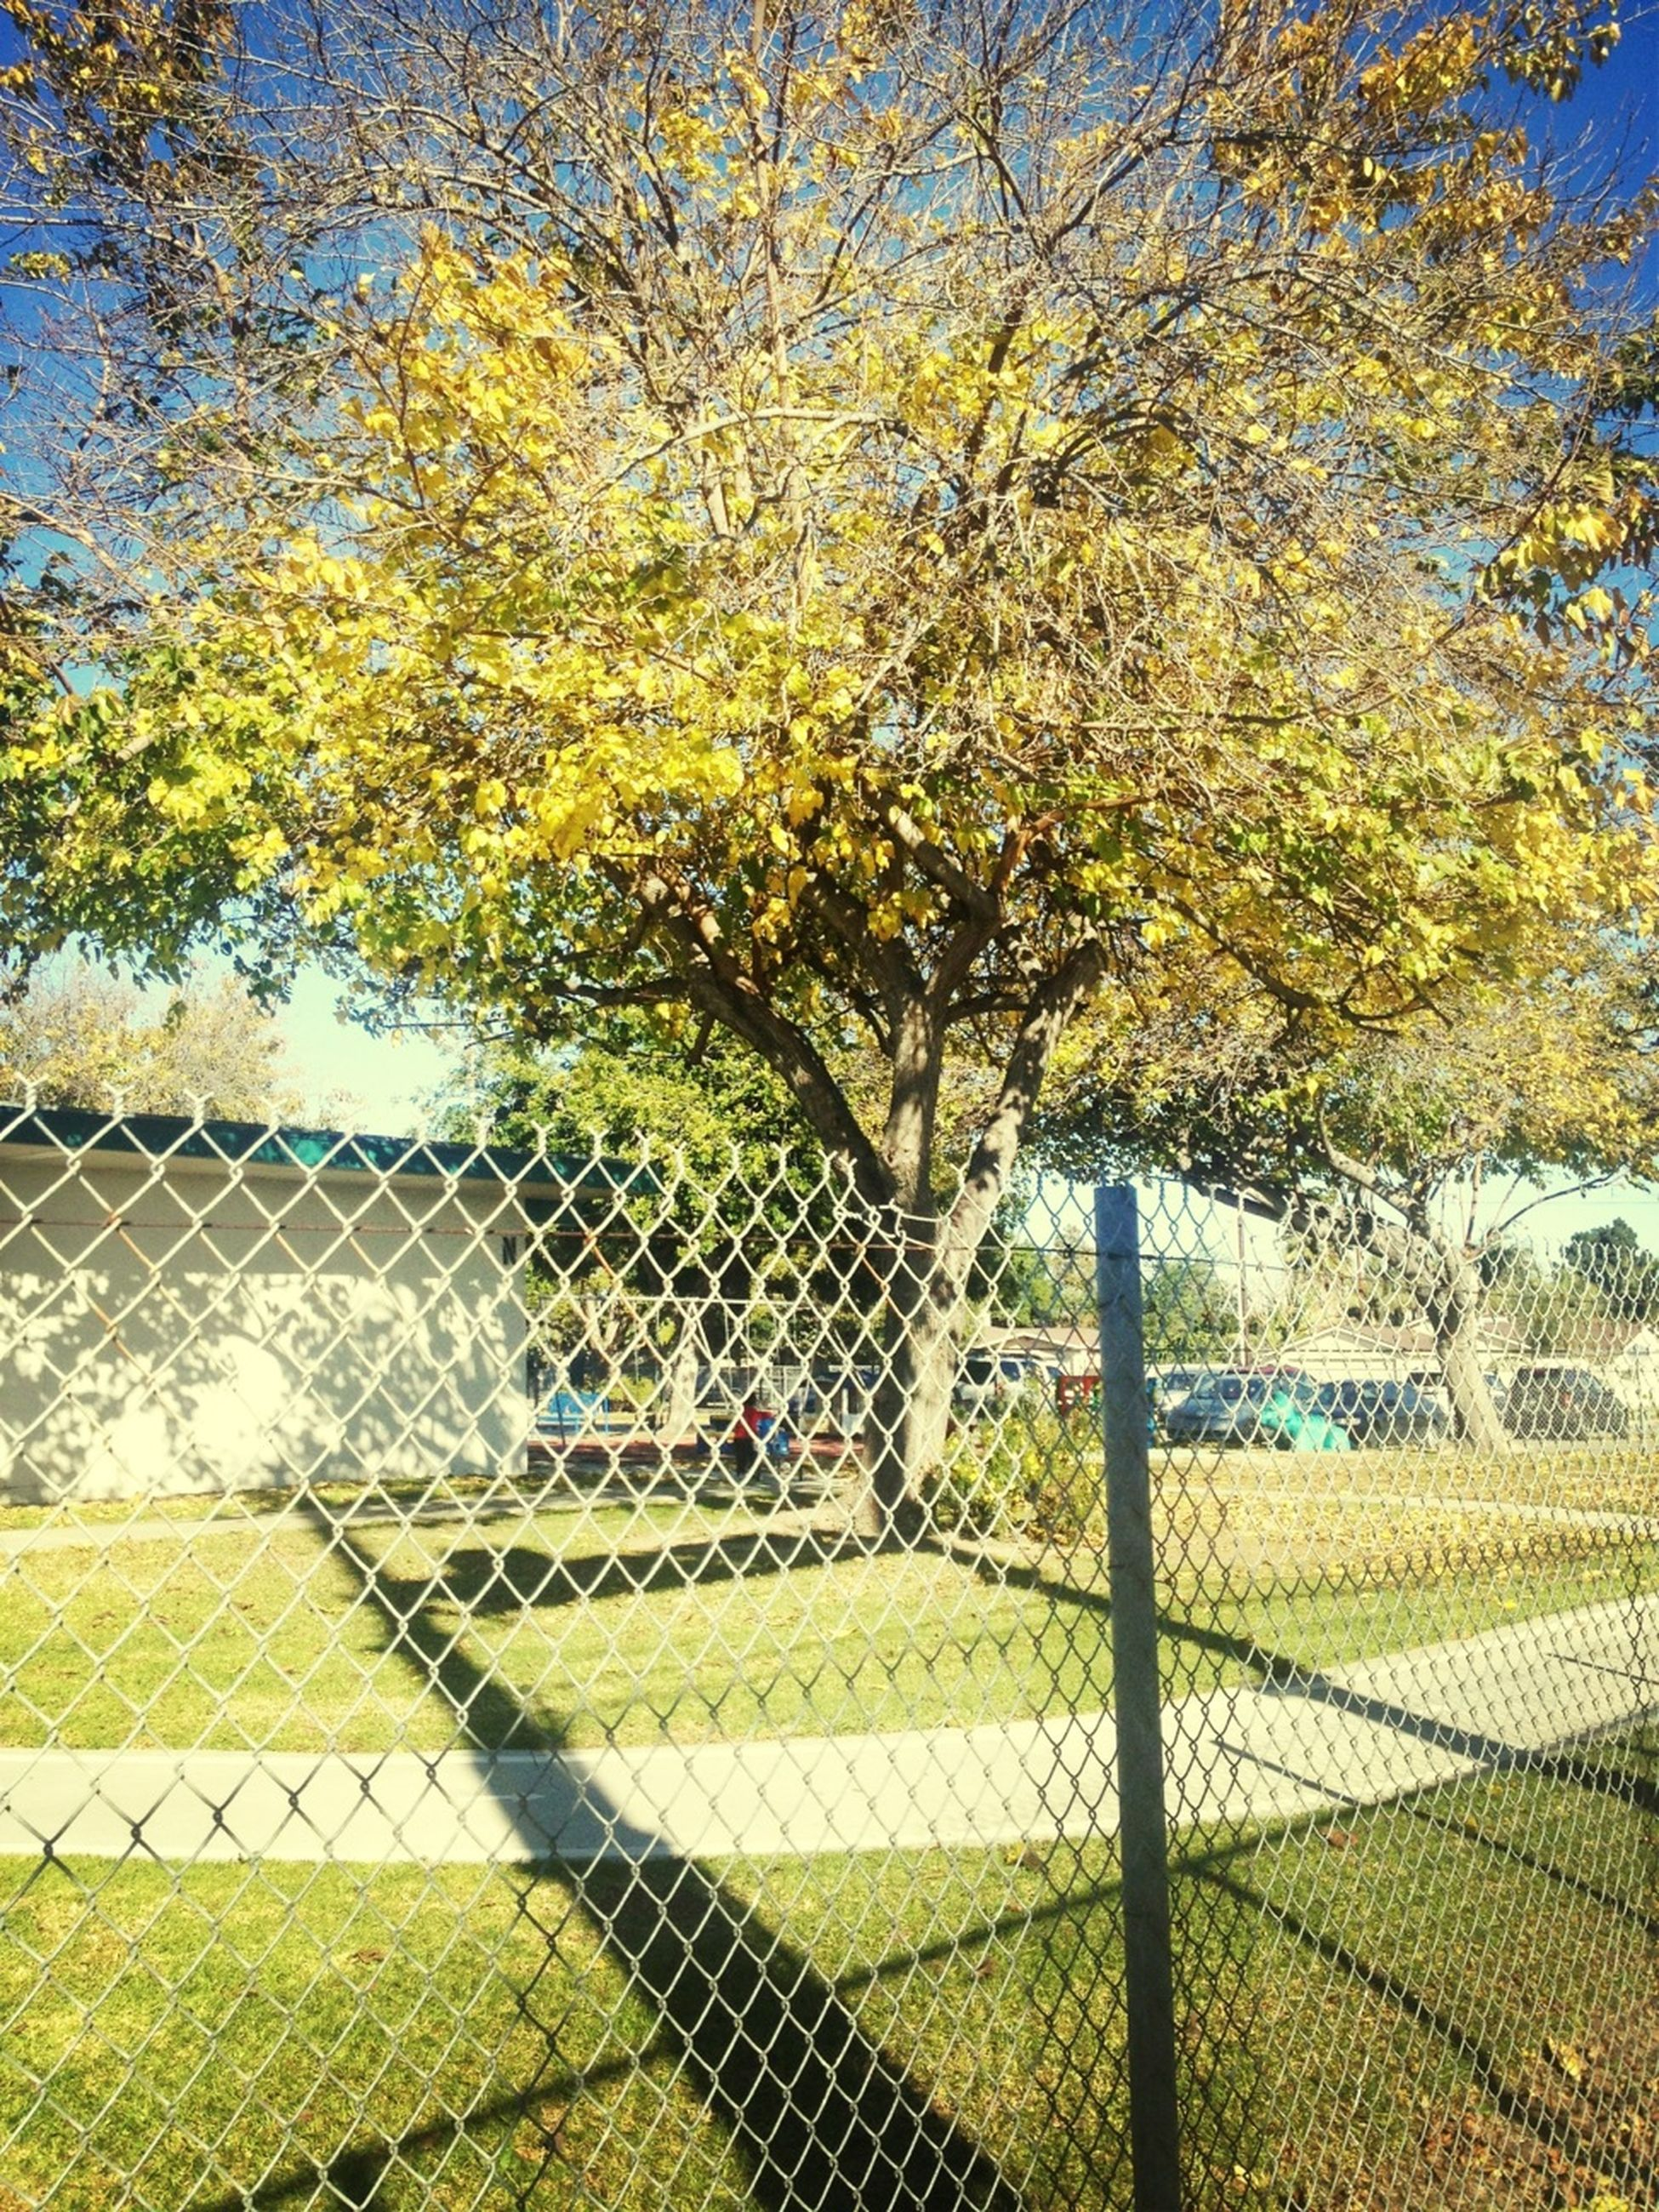 fence, chainlink fence, tree, protection, safety, metal, park - man made space, branch, sunlight, growth, railing, pattern, nature, security, day, green color, sky, outdoors, no people, grass